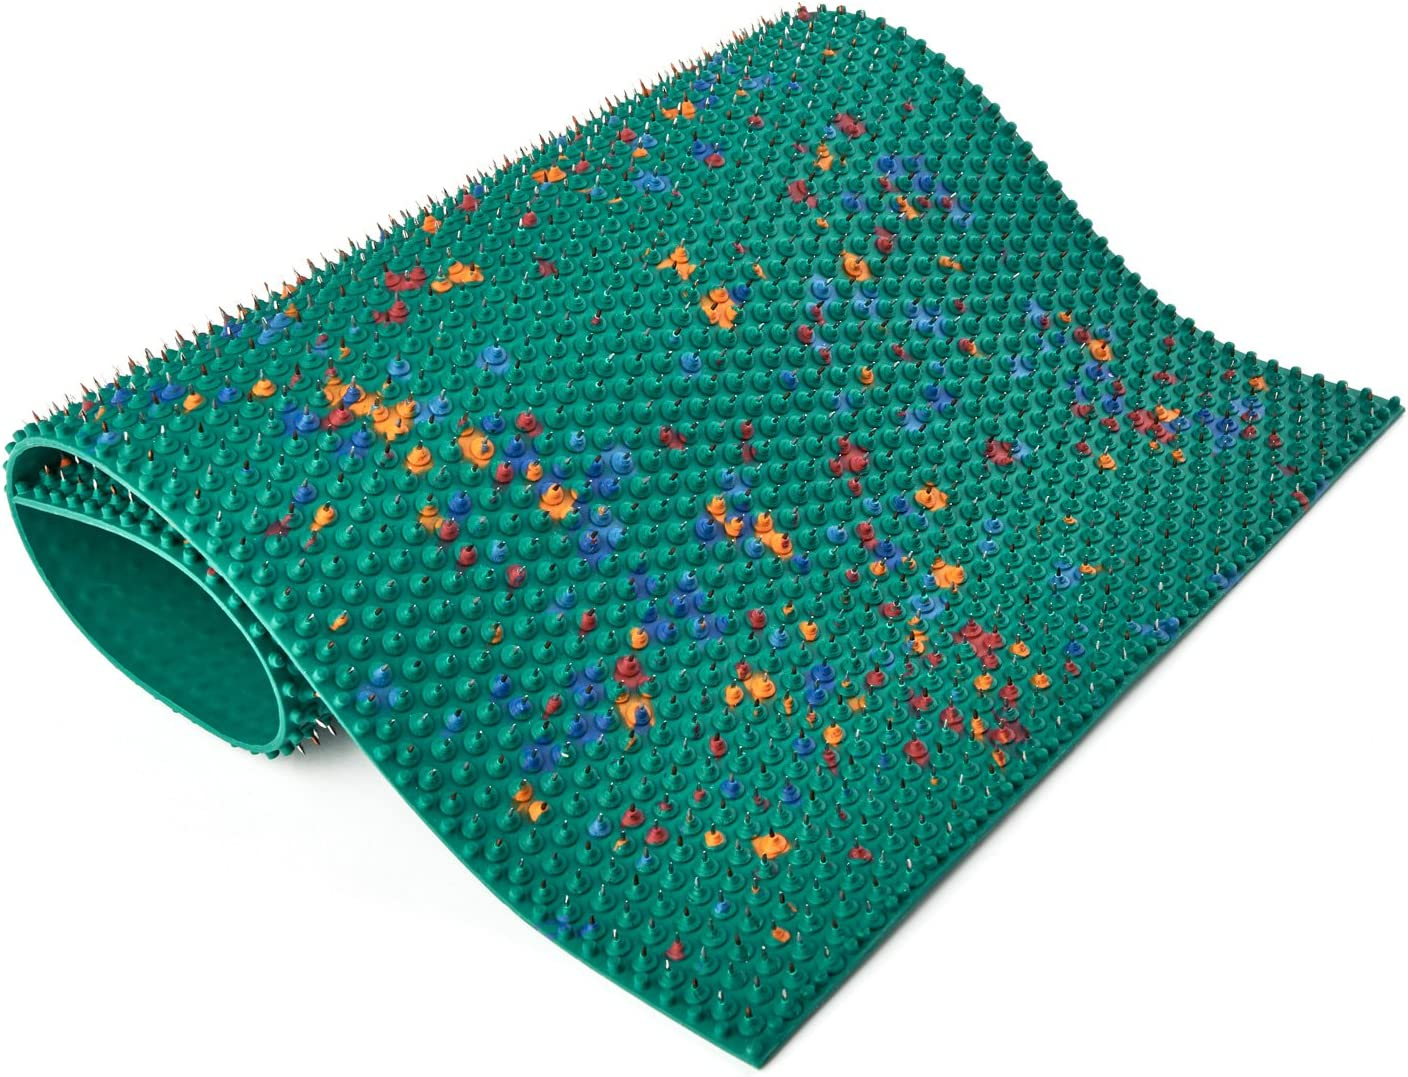 LYAPKO Acupuncture Mat Big Pad 7.0 Ag 2710 Needles. Unique Massager Active Applicator for the Relief of Pain & Stress. Premium Acupressure Patented Therapy Massage Tool